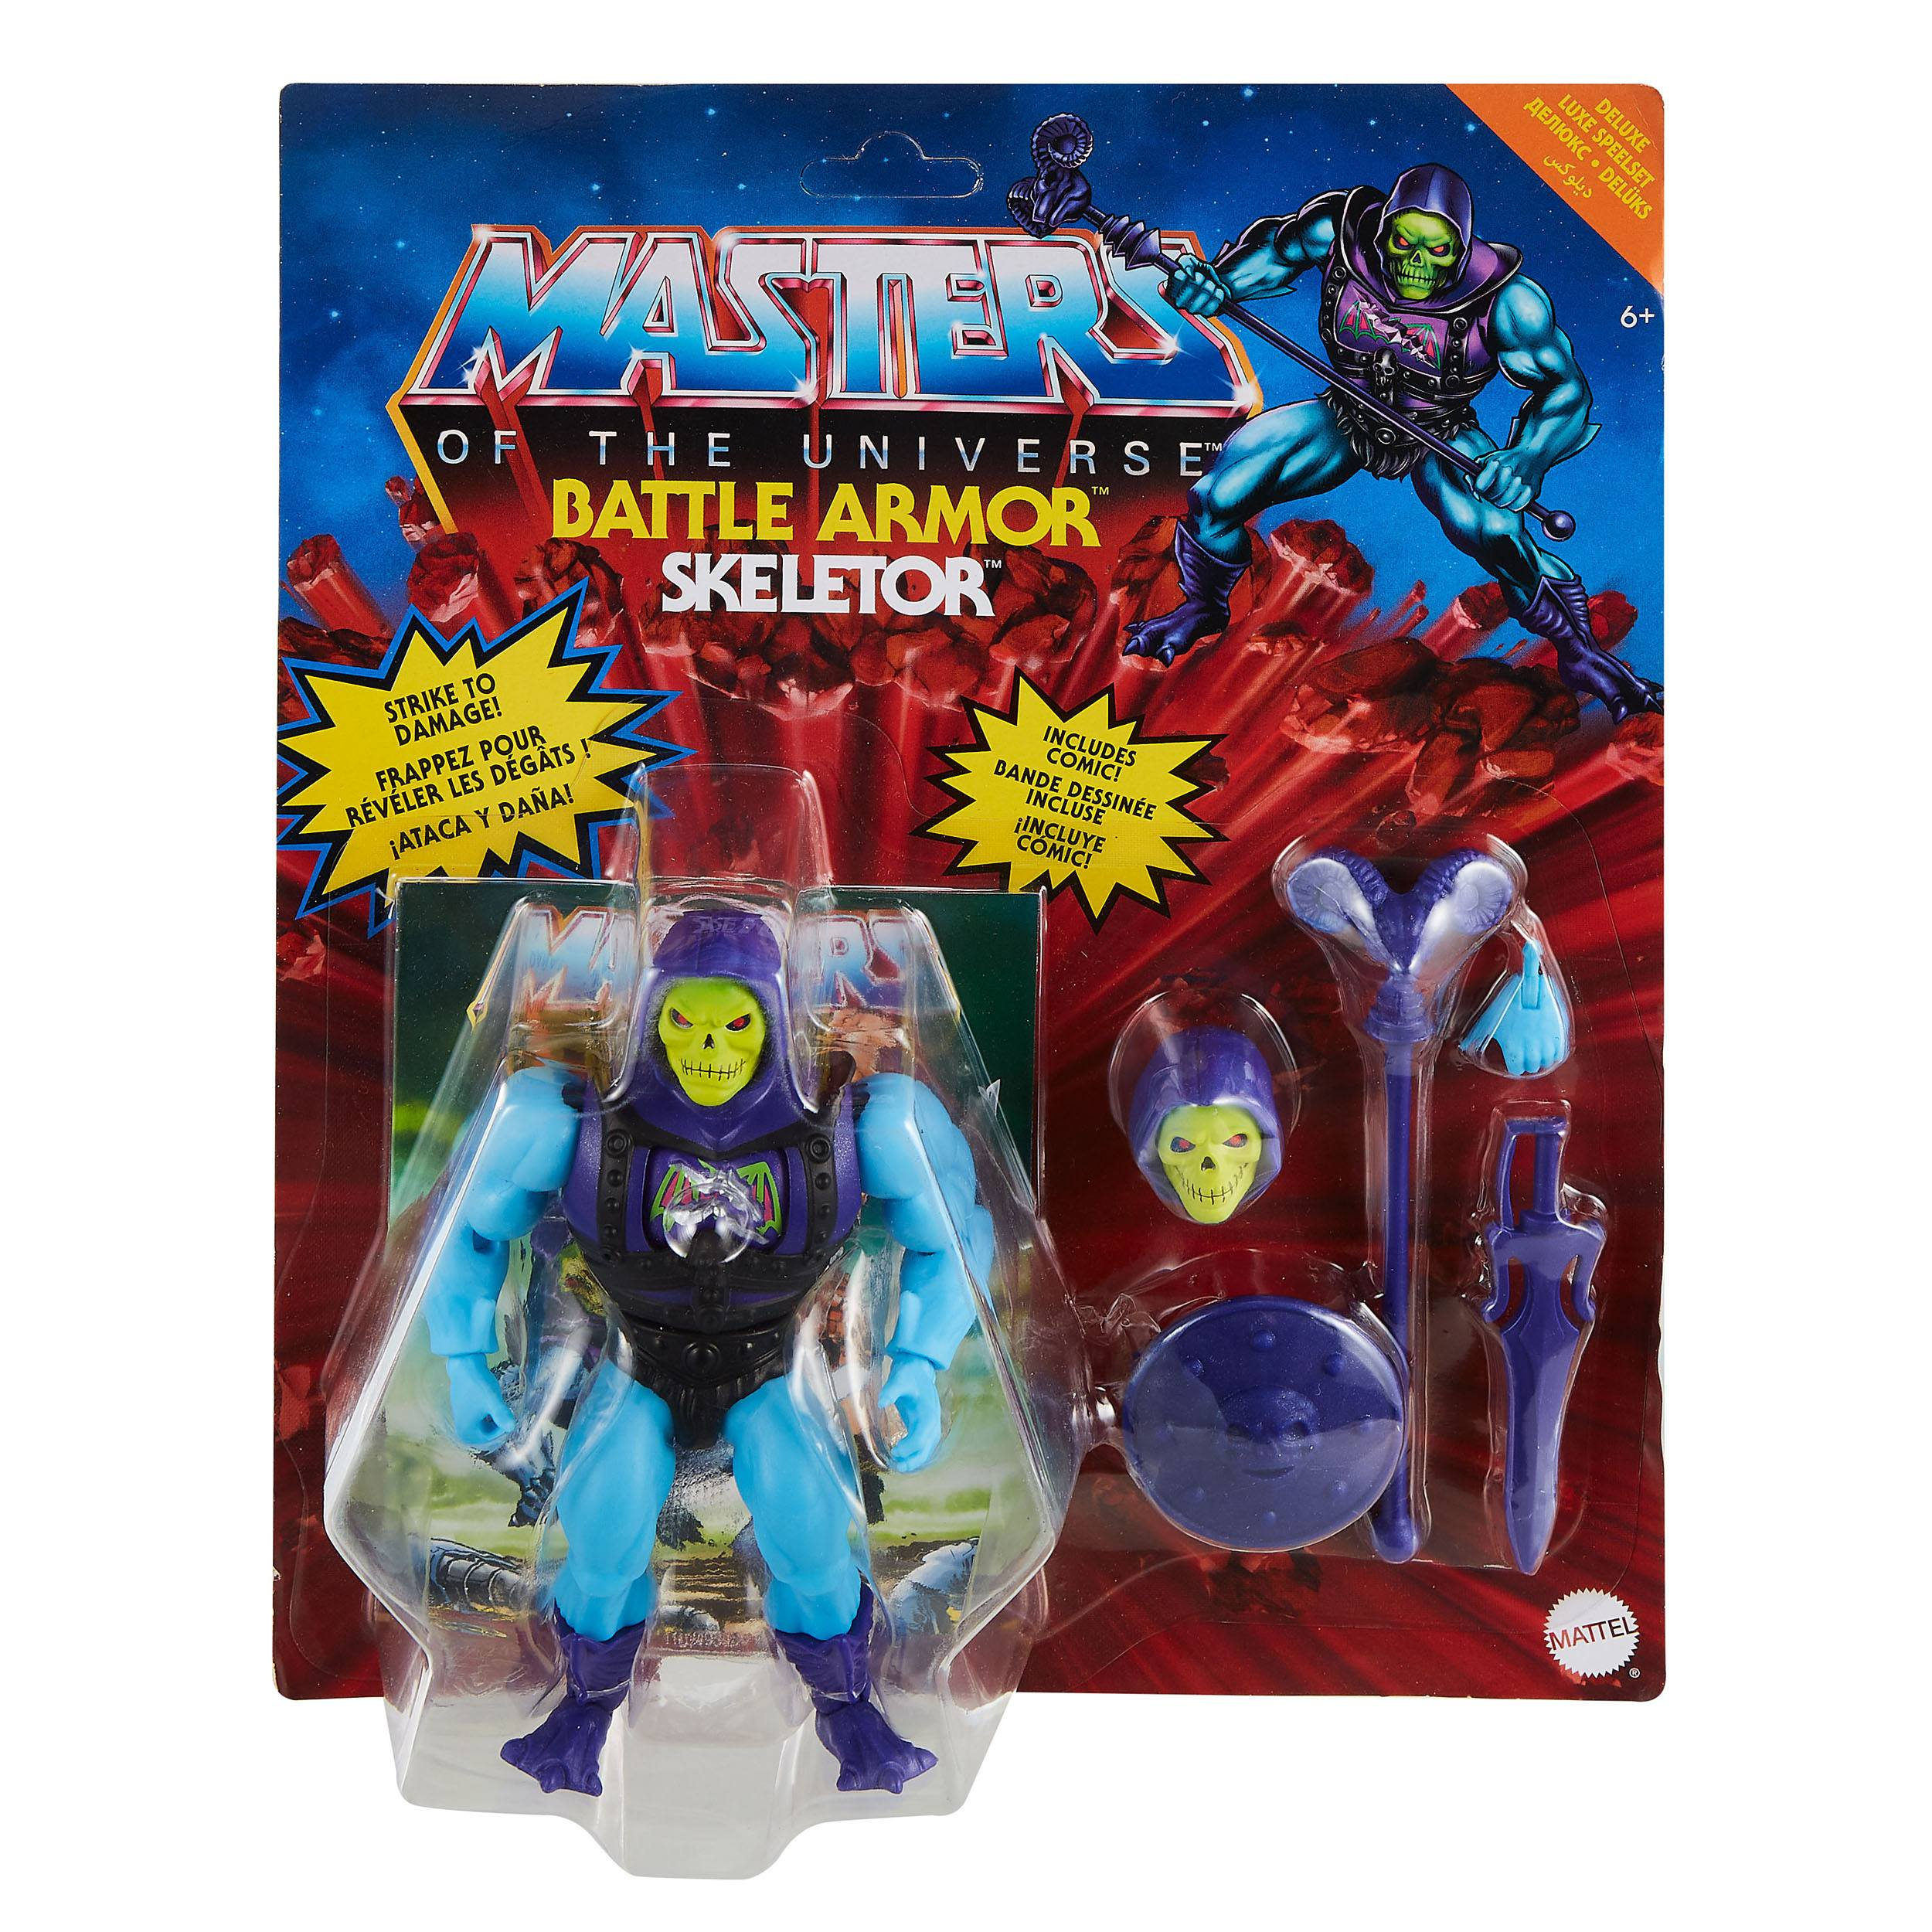 Masters of the Universe Deluxe Actionfigur 2021 Skeletor 14 cm MATTGVL77 887961929614